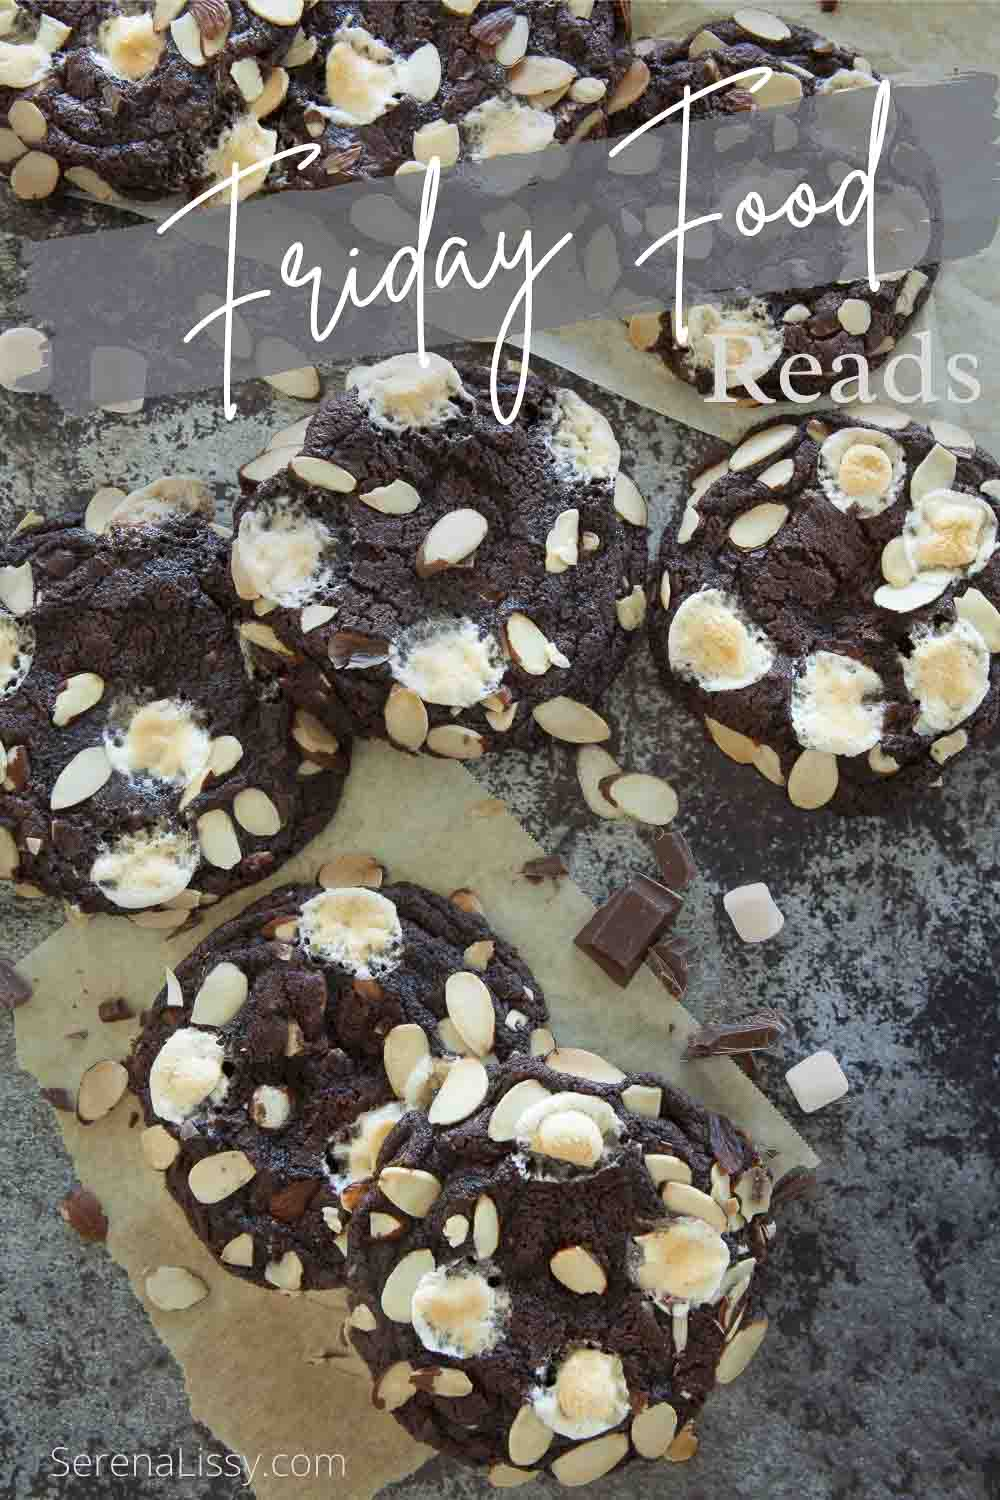 Friday Food Reads Cover Image